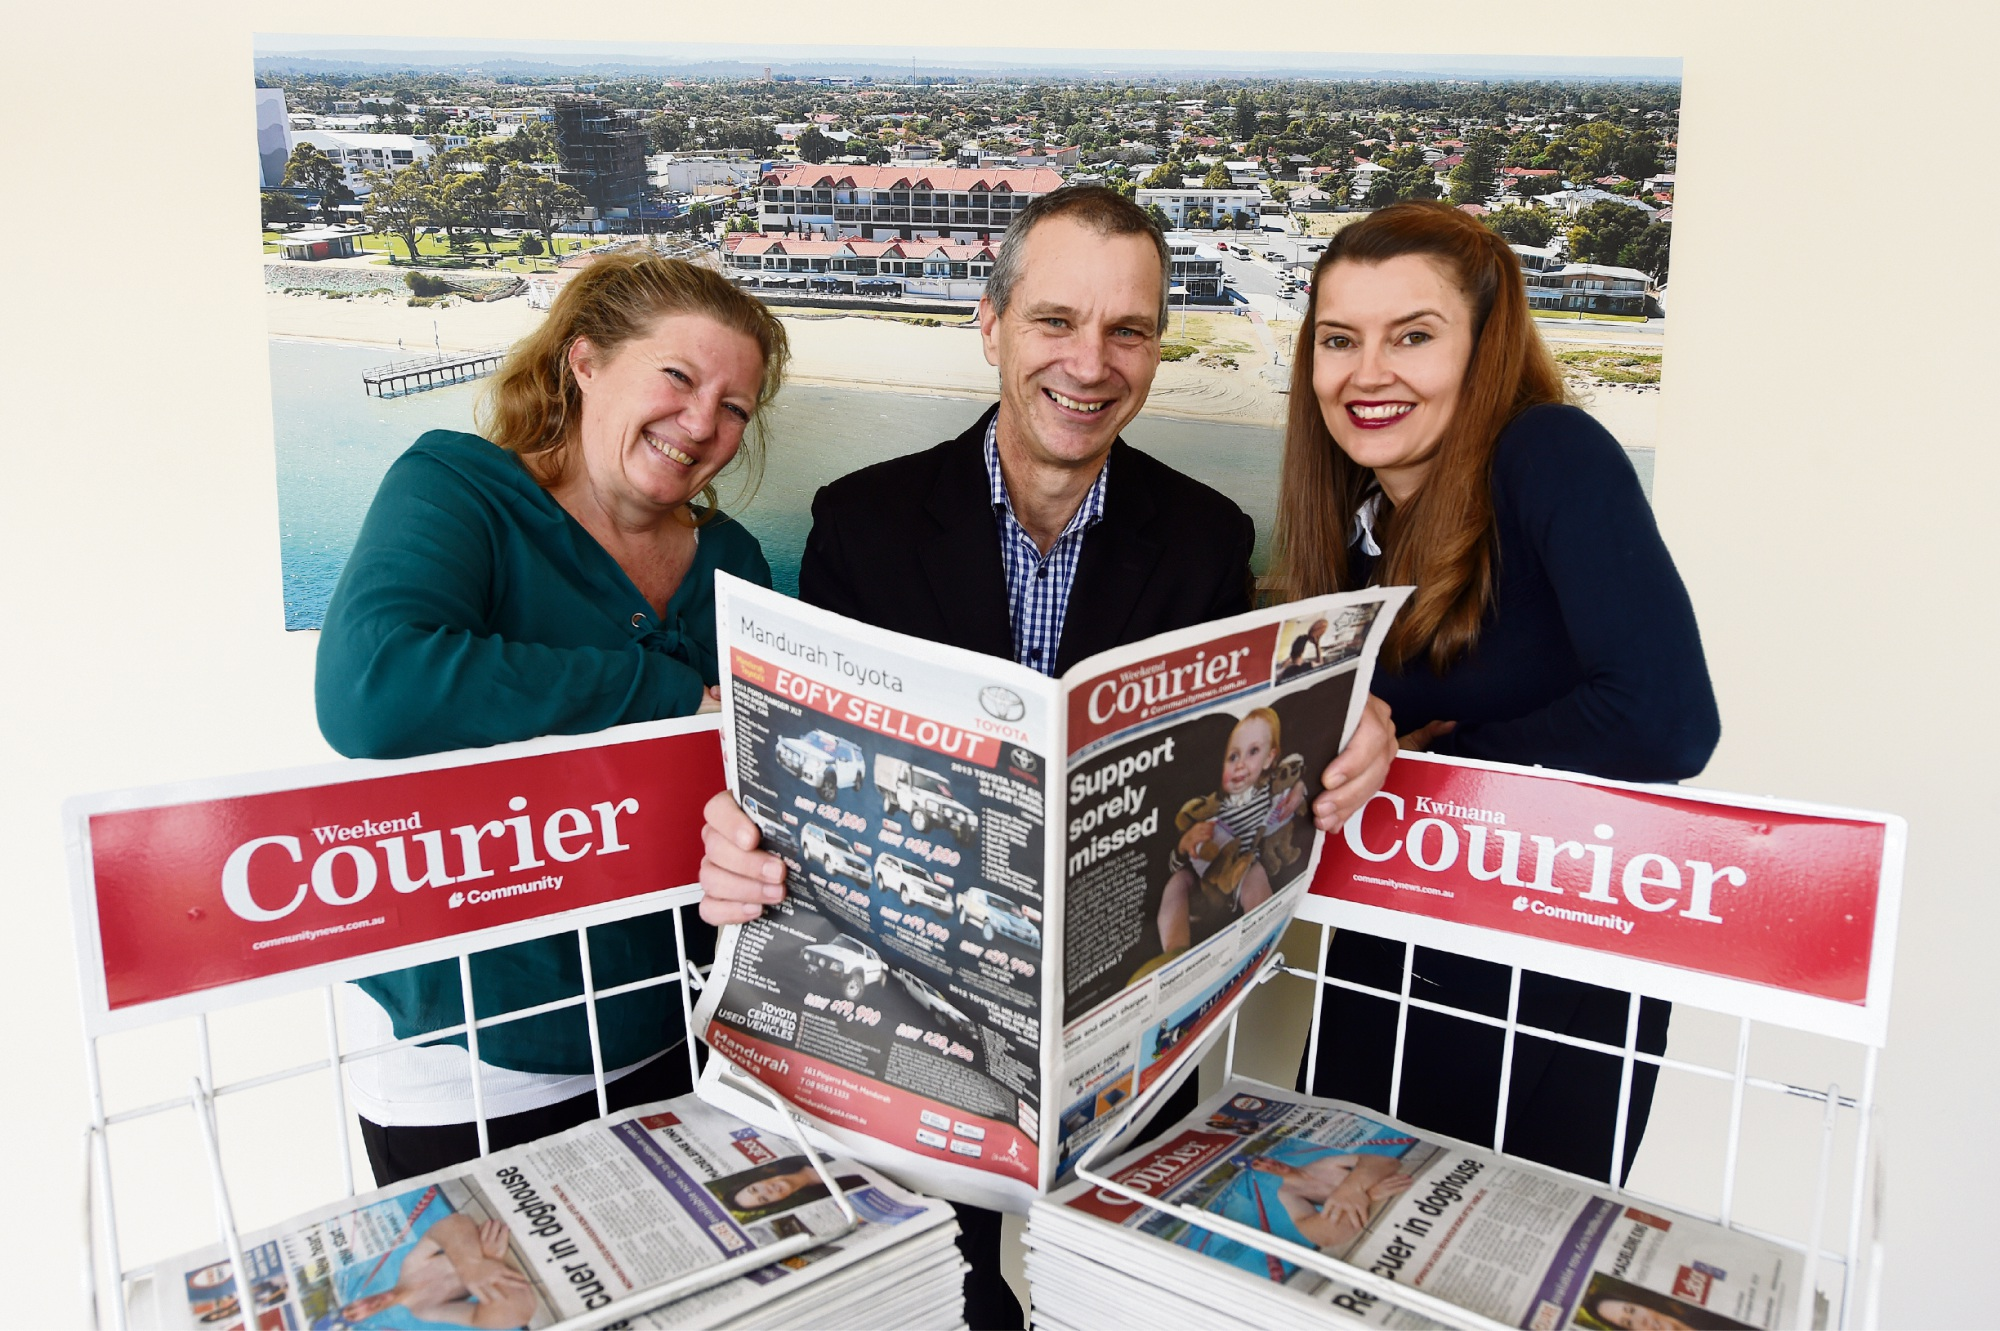 Weekend Courier reporters Gabrielle Jeffery and Tim Slather with editor Vanessa Schmitt.